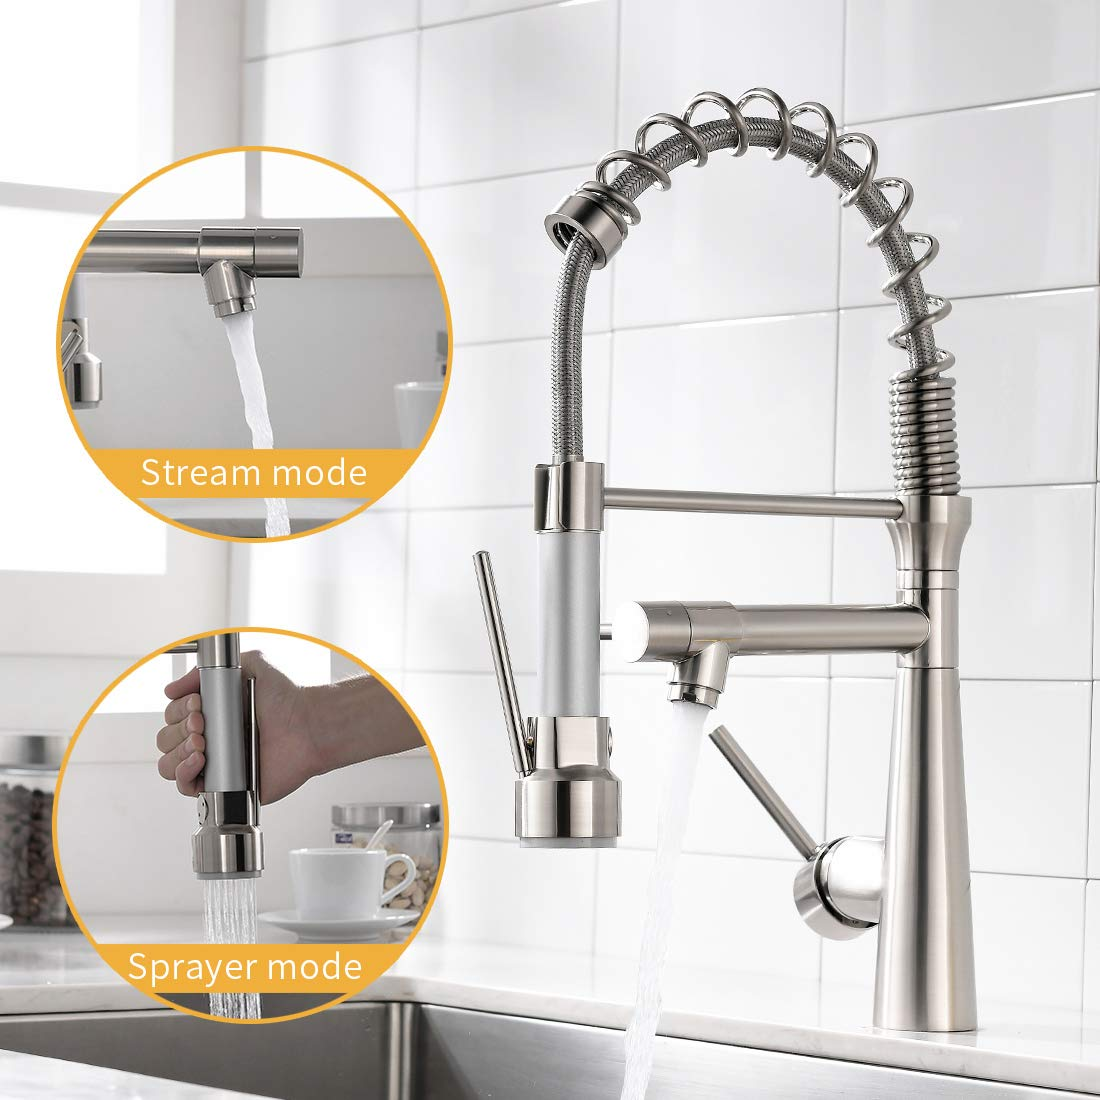 WANMAI Pull Down Sprayer Kitchen Faucet, Commercial Single Handle Kitchen Sink Faucets with Stream Spout & Ceramic Valve, Brushed Nickel